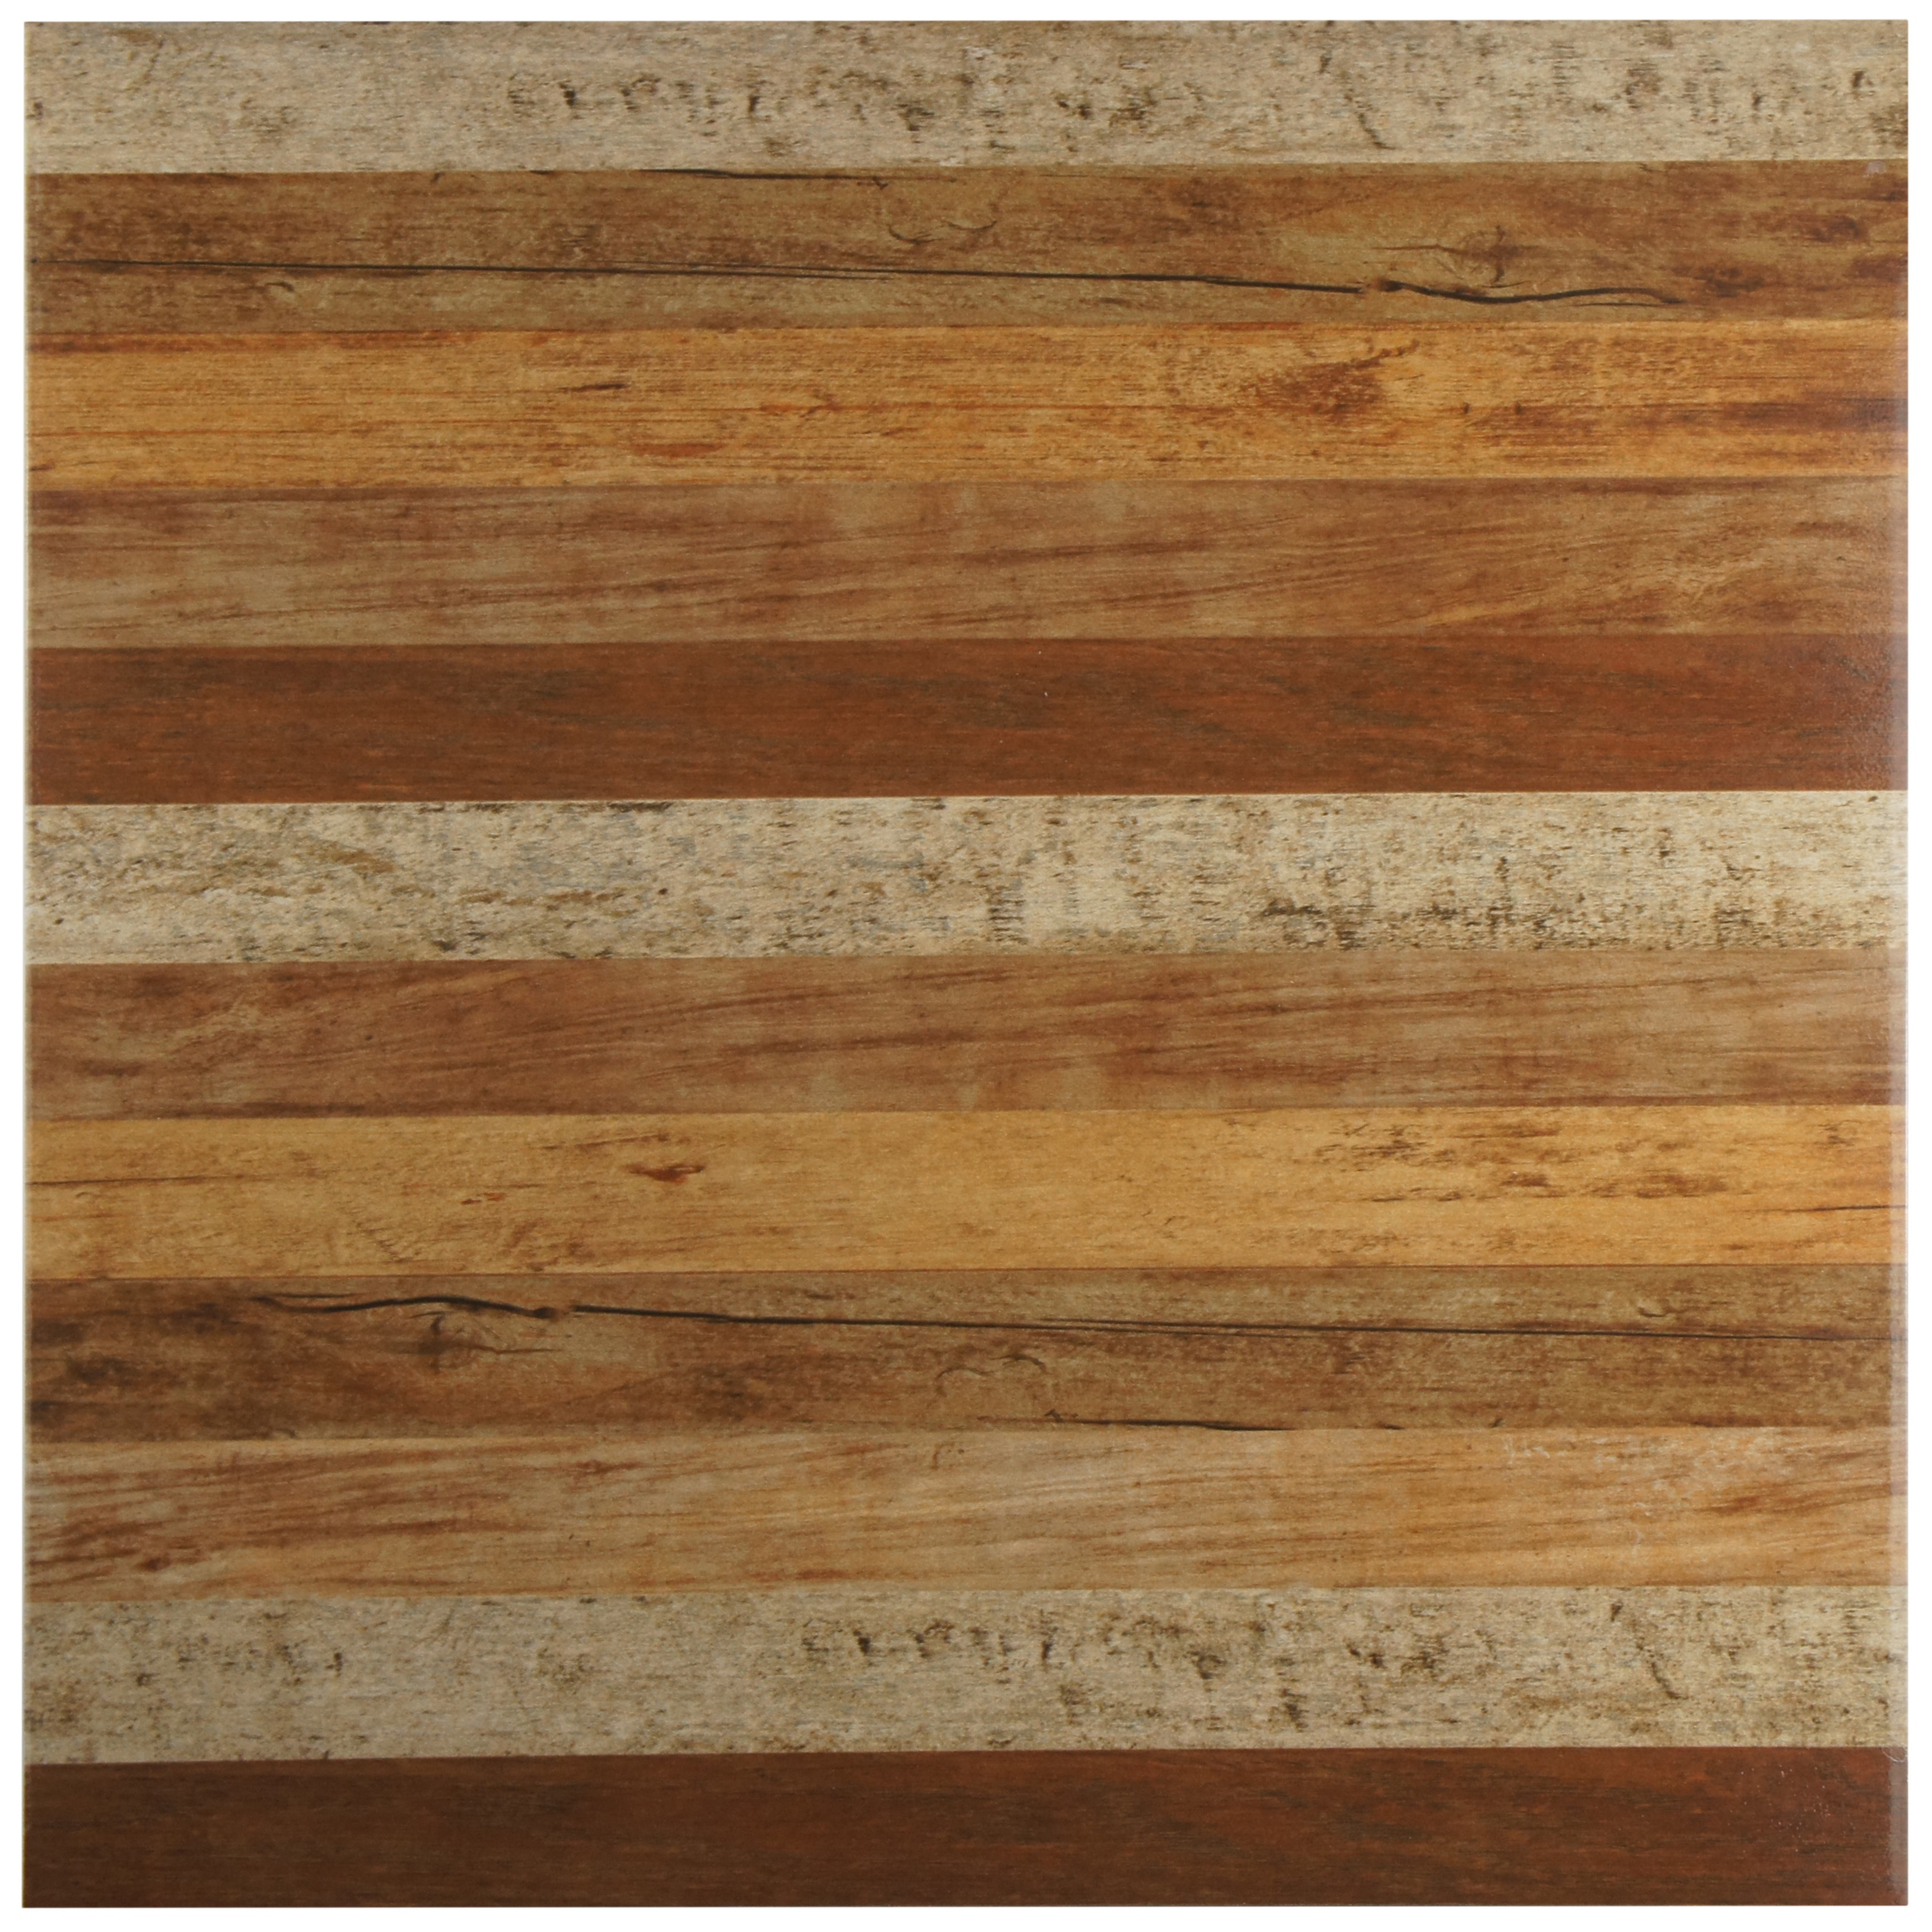 Somertile 1775x1775 inch ottawa natural ceramic floor and wall somertile 1775x1775 inch ottawa natural ceramic floor and wall tile 10 tiles2185 sqft free shipping today overstock 17722332 dailygadgetfo Images